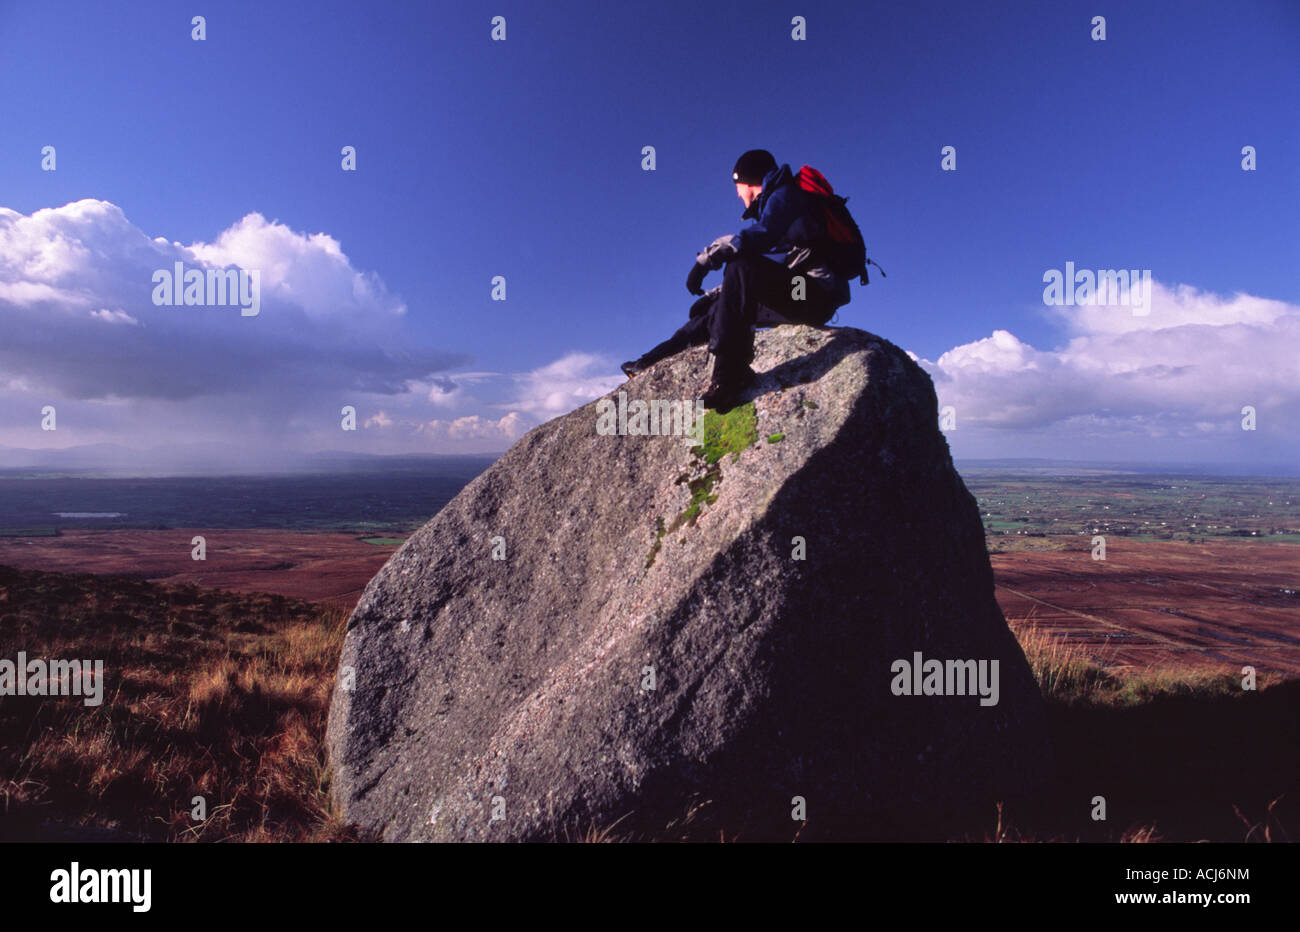 Walker on a glacial erratic boulder looking over Donegal Bay. Ox Mountains, County Sligo, Ireland. - Stock Image